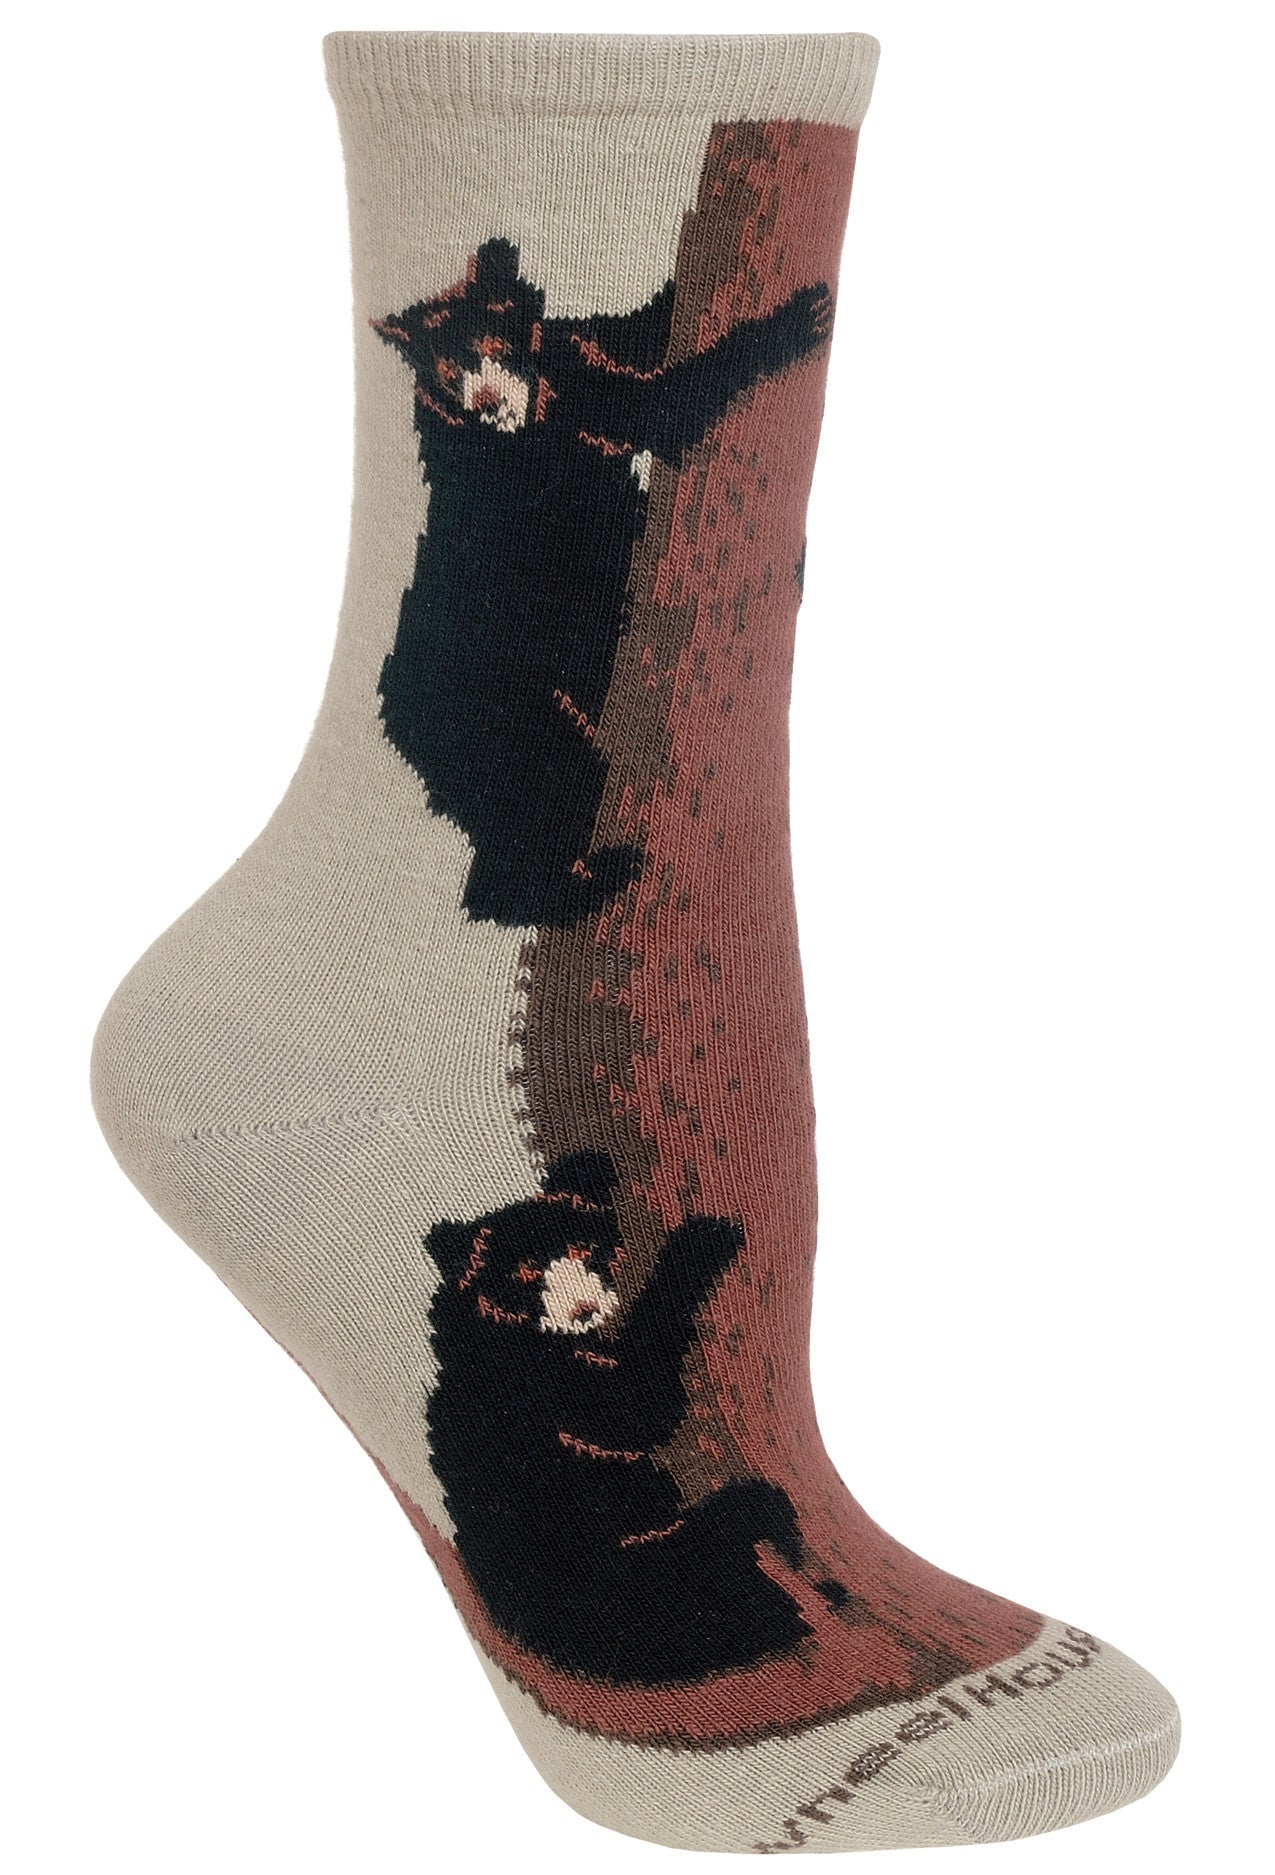 Bear, Climbing Tree on Stone Socks